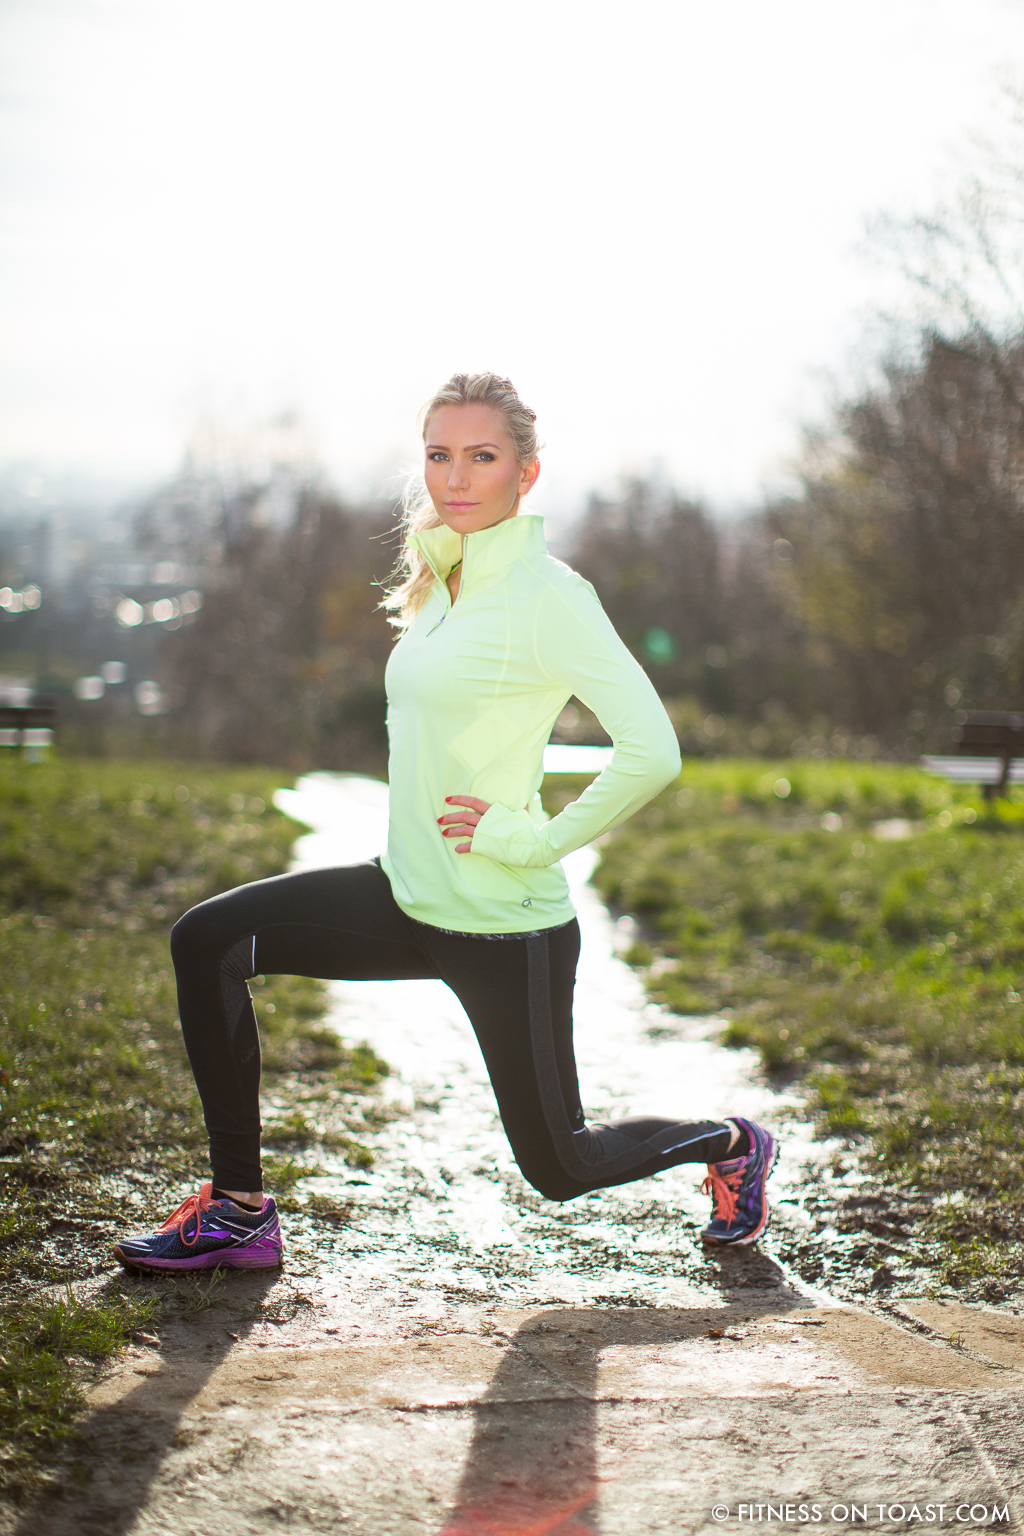 Fitness On Toast Faya Blog Girl Healthy Running Gap Fit Hampstead Heath London Workout Destination Outdoor Active Escape Running Train Exercise-8